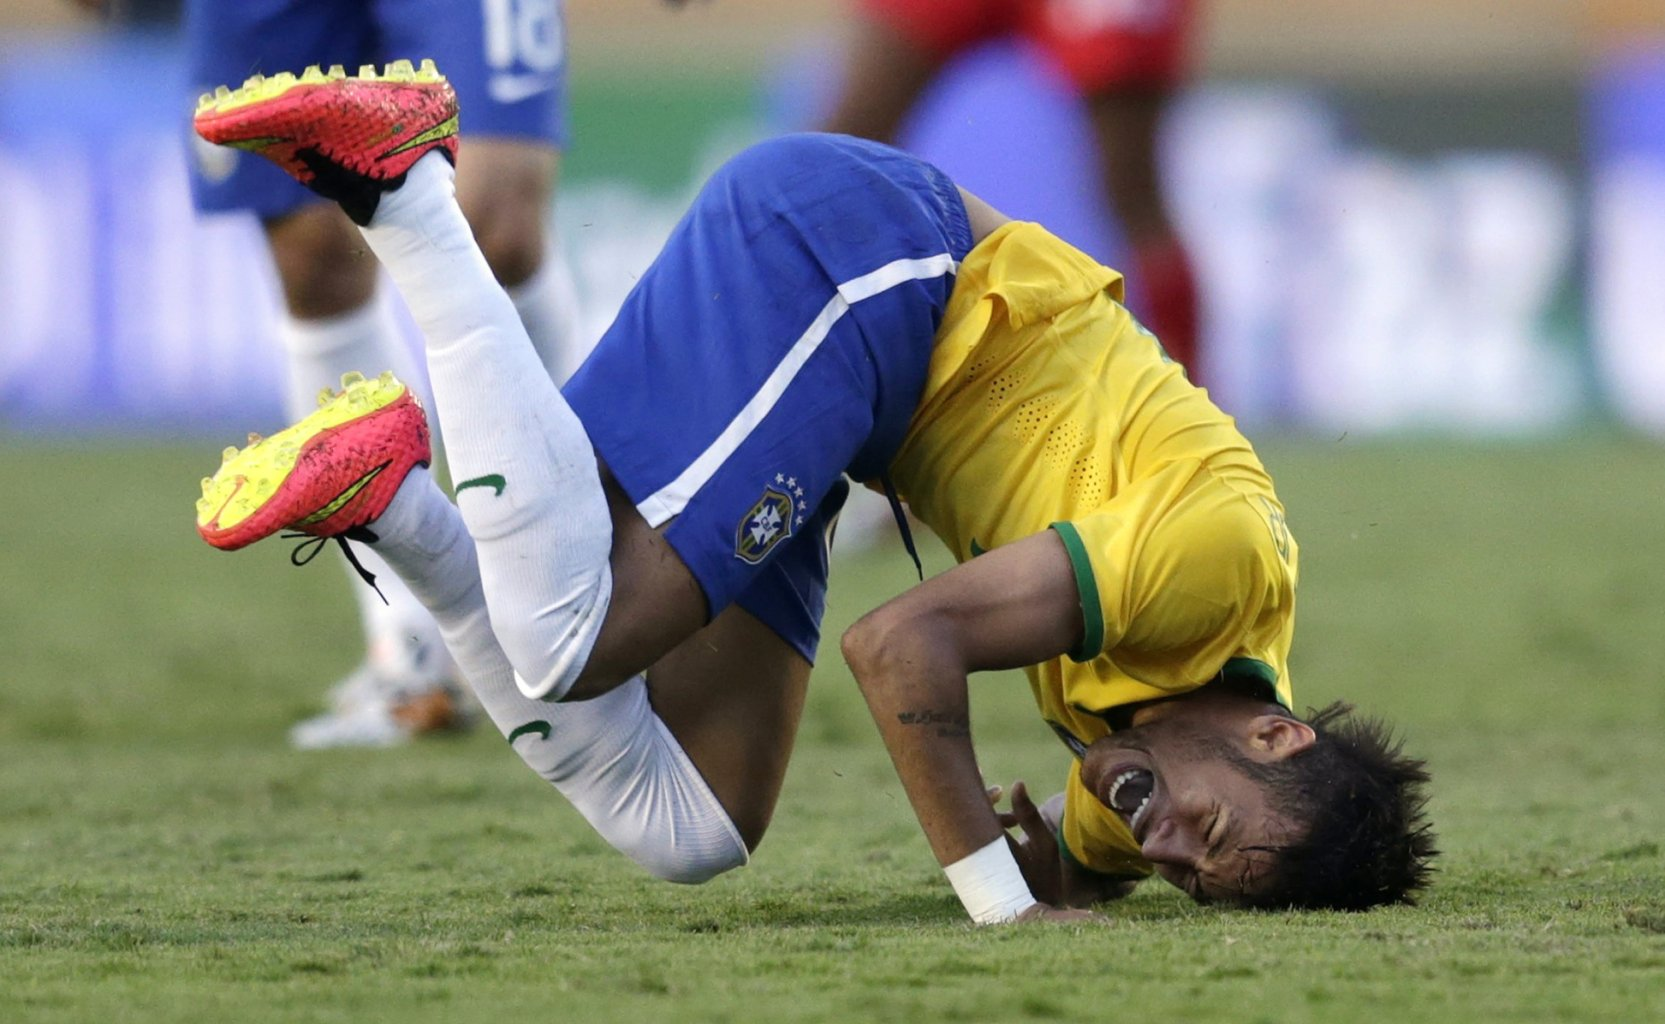 Neymar diving and rolling over his own body